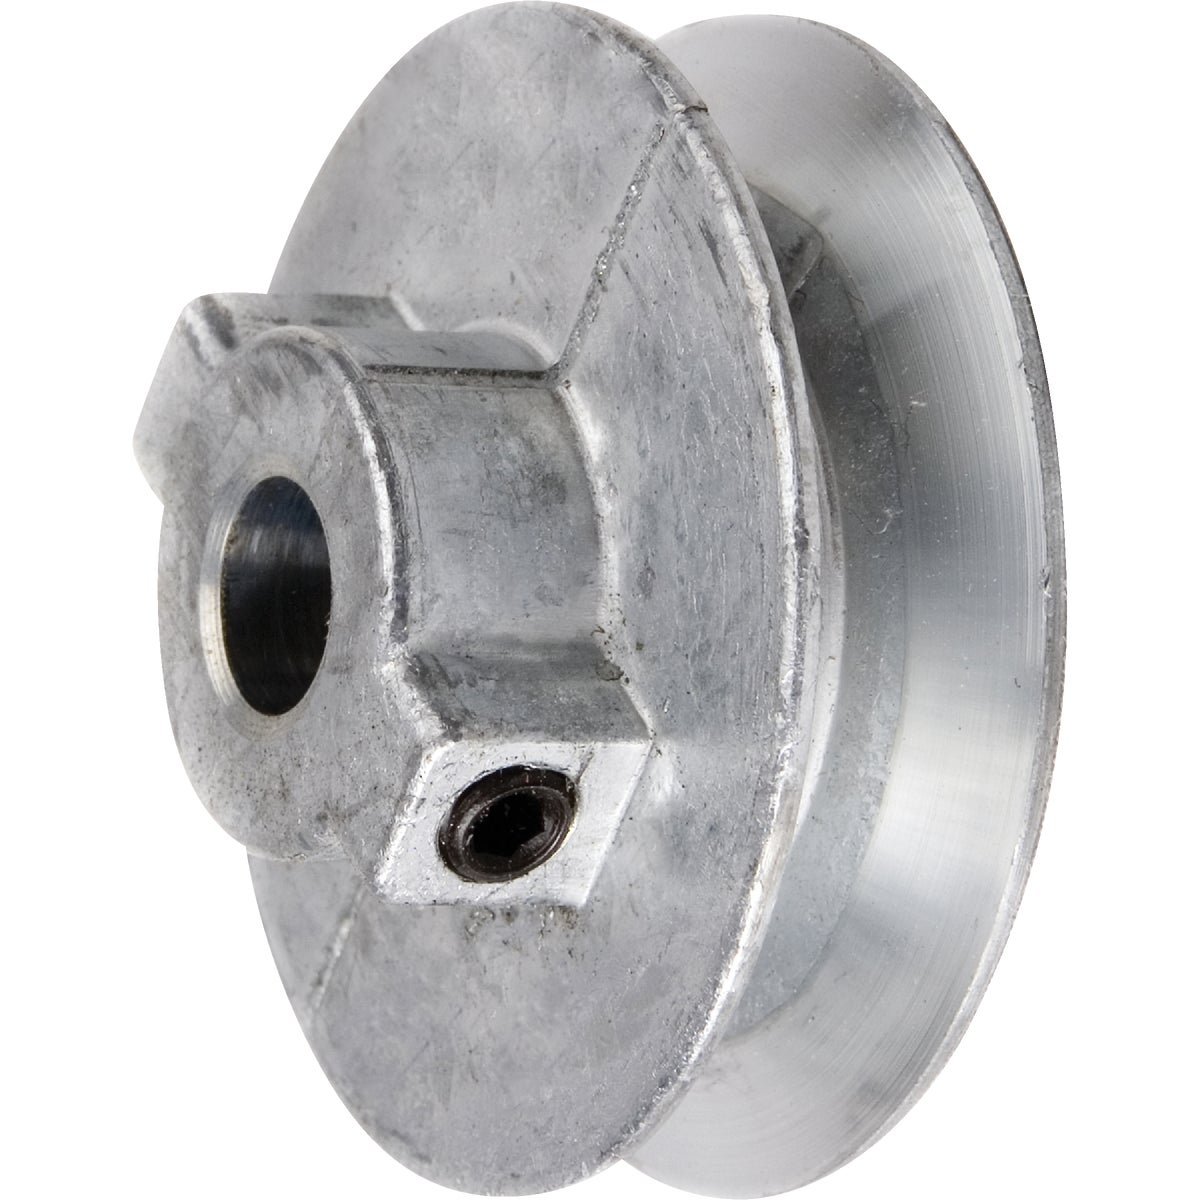 5X3/4 PULLEY - 500A7 by Chicago Die Casting